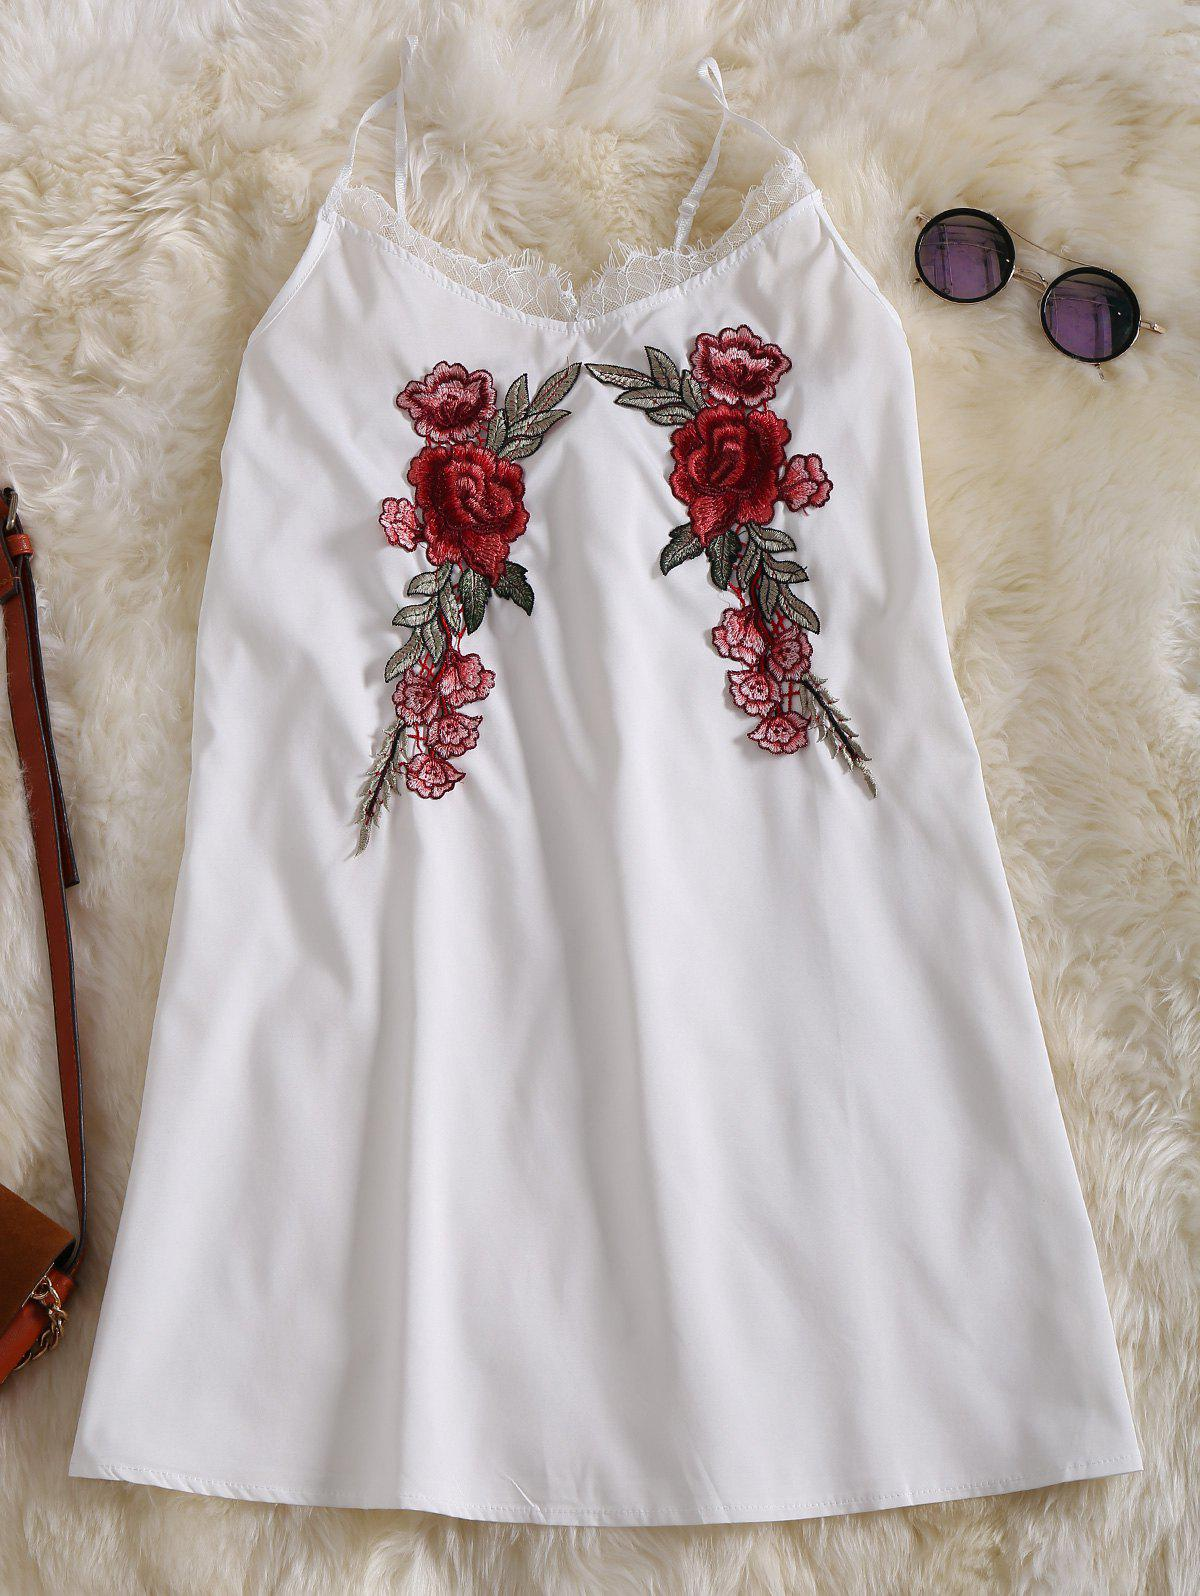 Embroidered Slip Lace Rose Applique Dress